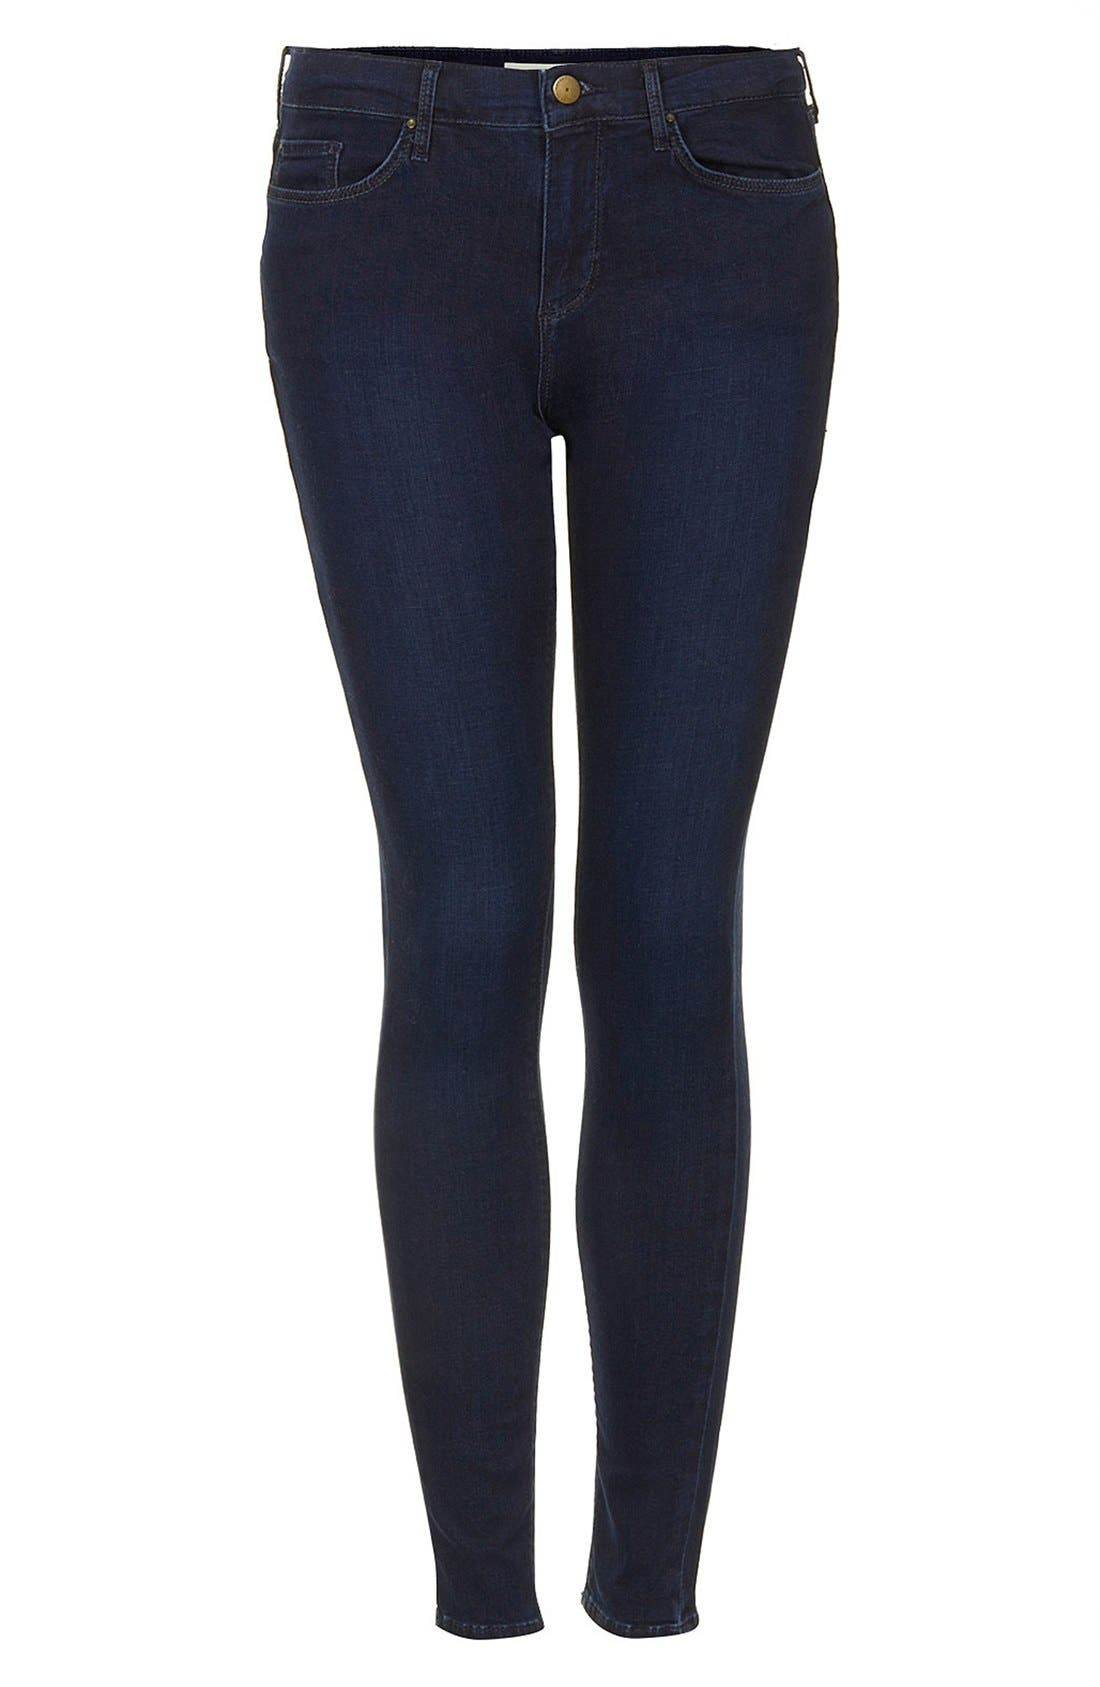 Alternate Image 3  - Topshop Moto 'Leigh' Skinny Jeans (Blue Black) (Regular & Long)